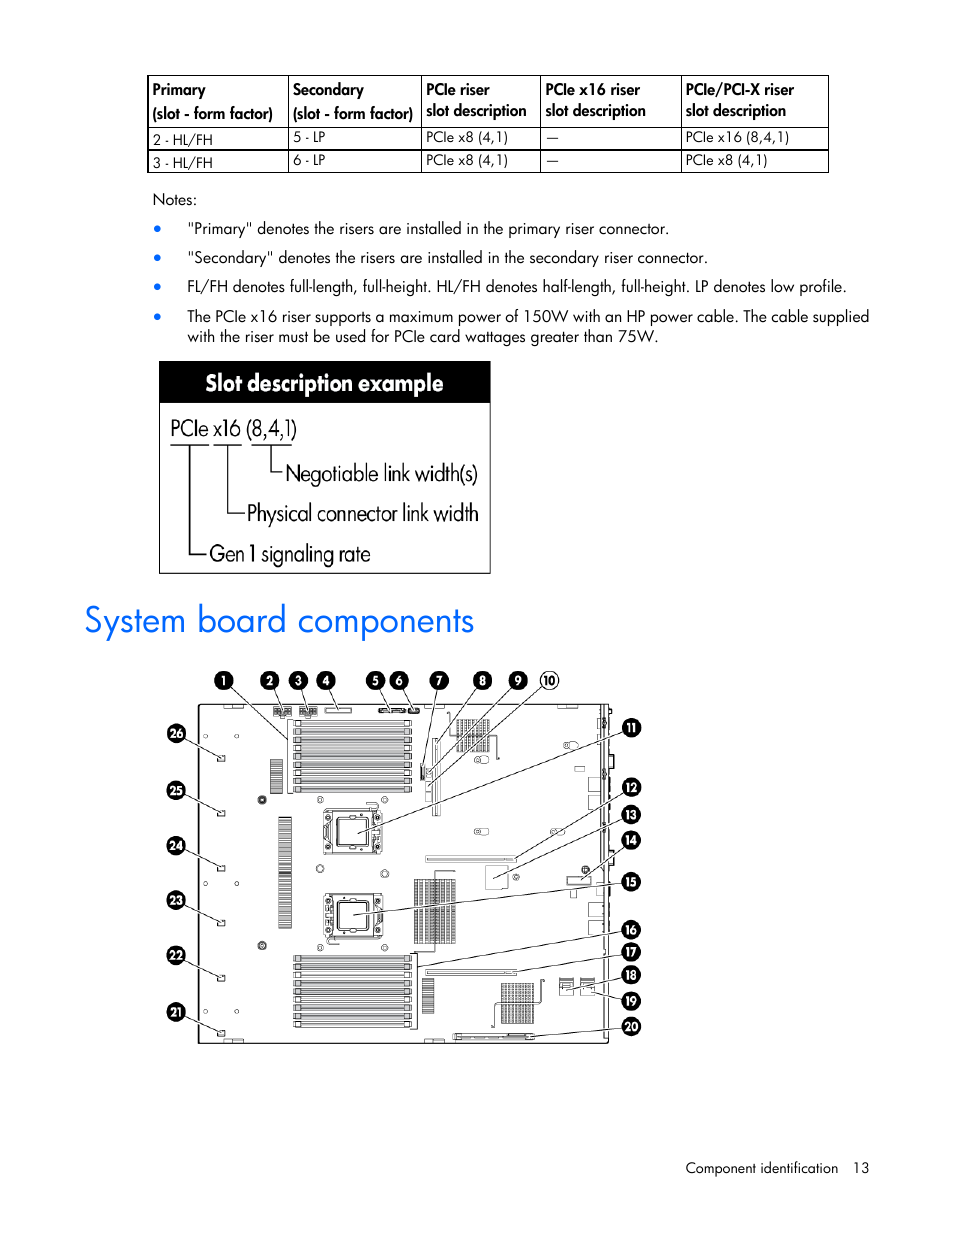 System board components | HP ProLiant DL380 G6 Server User